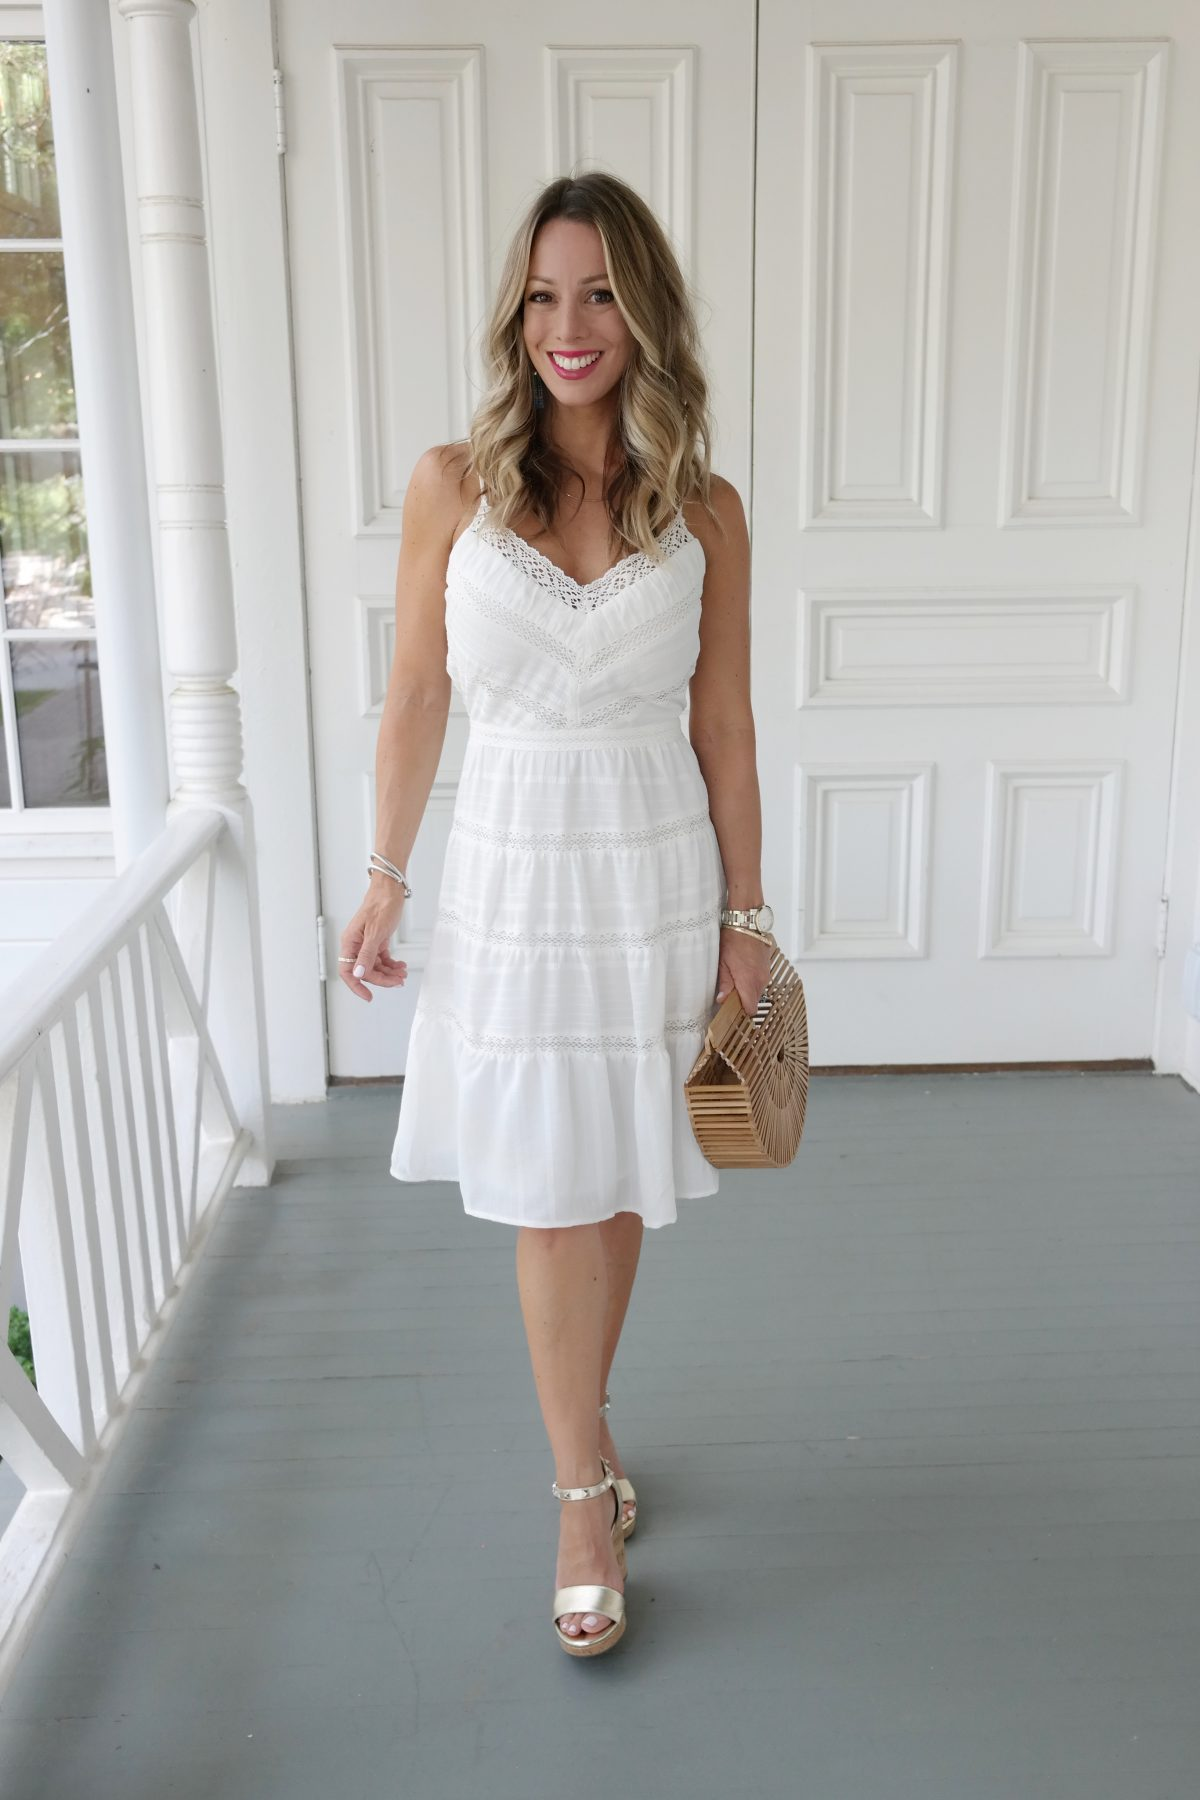 Spring and Summer outfit - white sundress and wedges